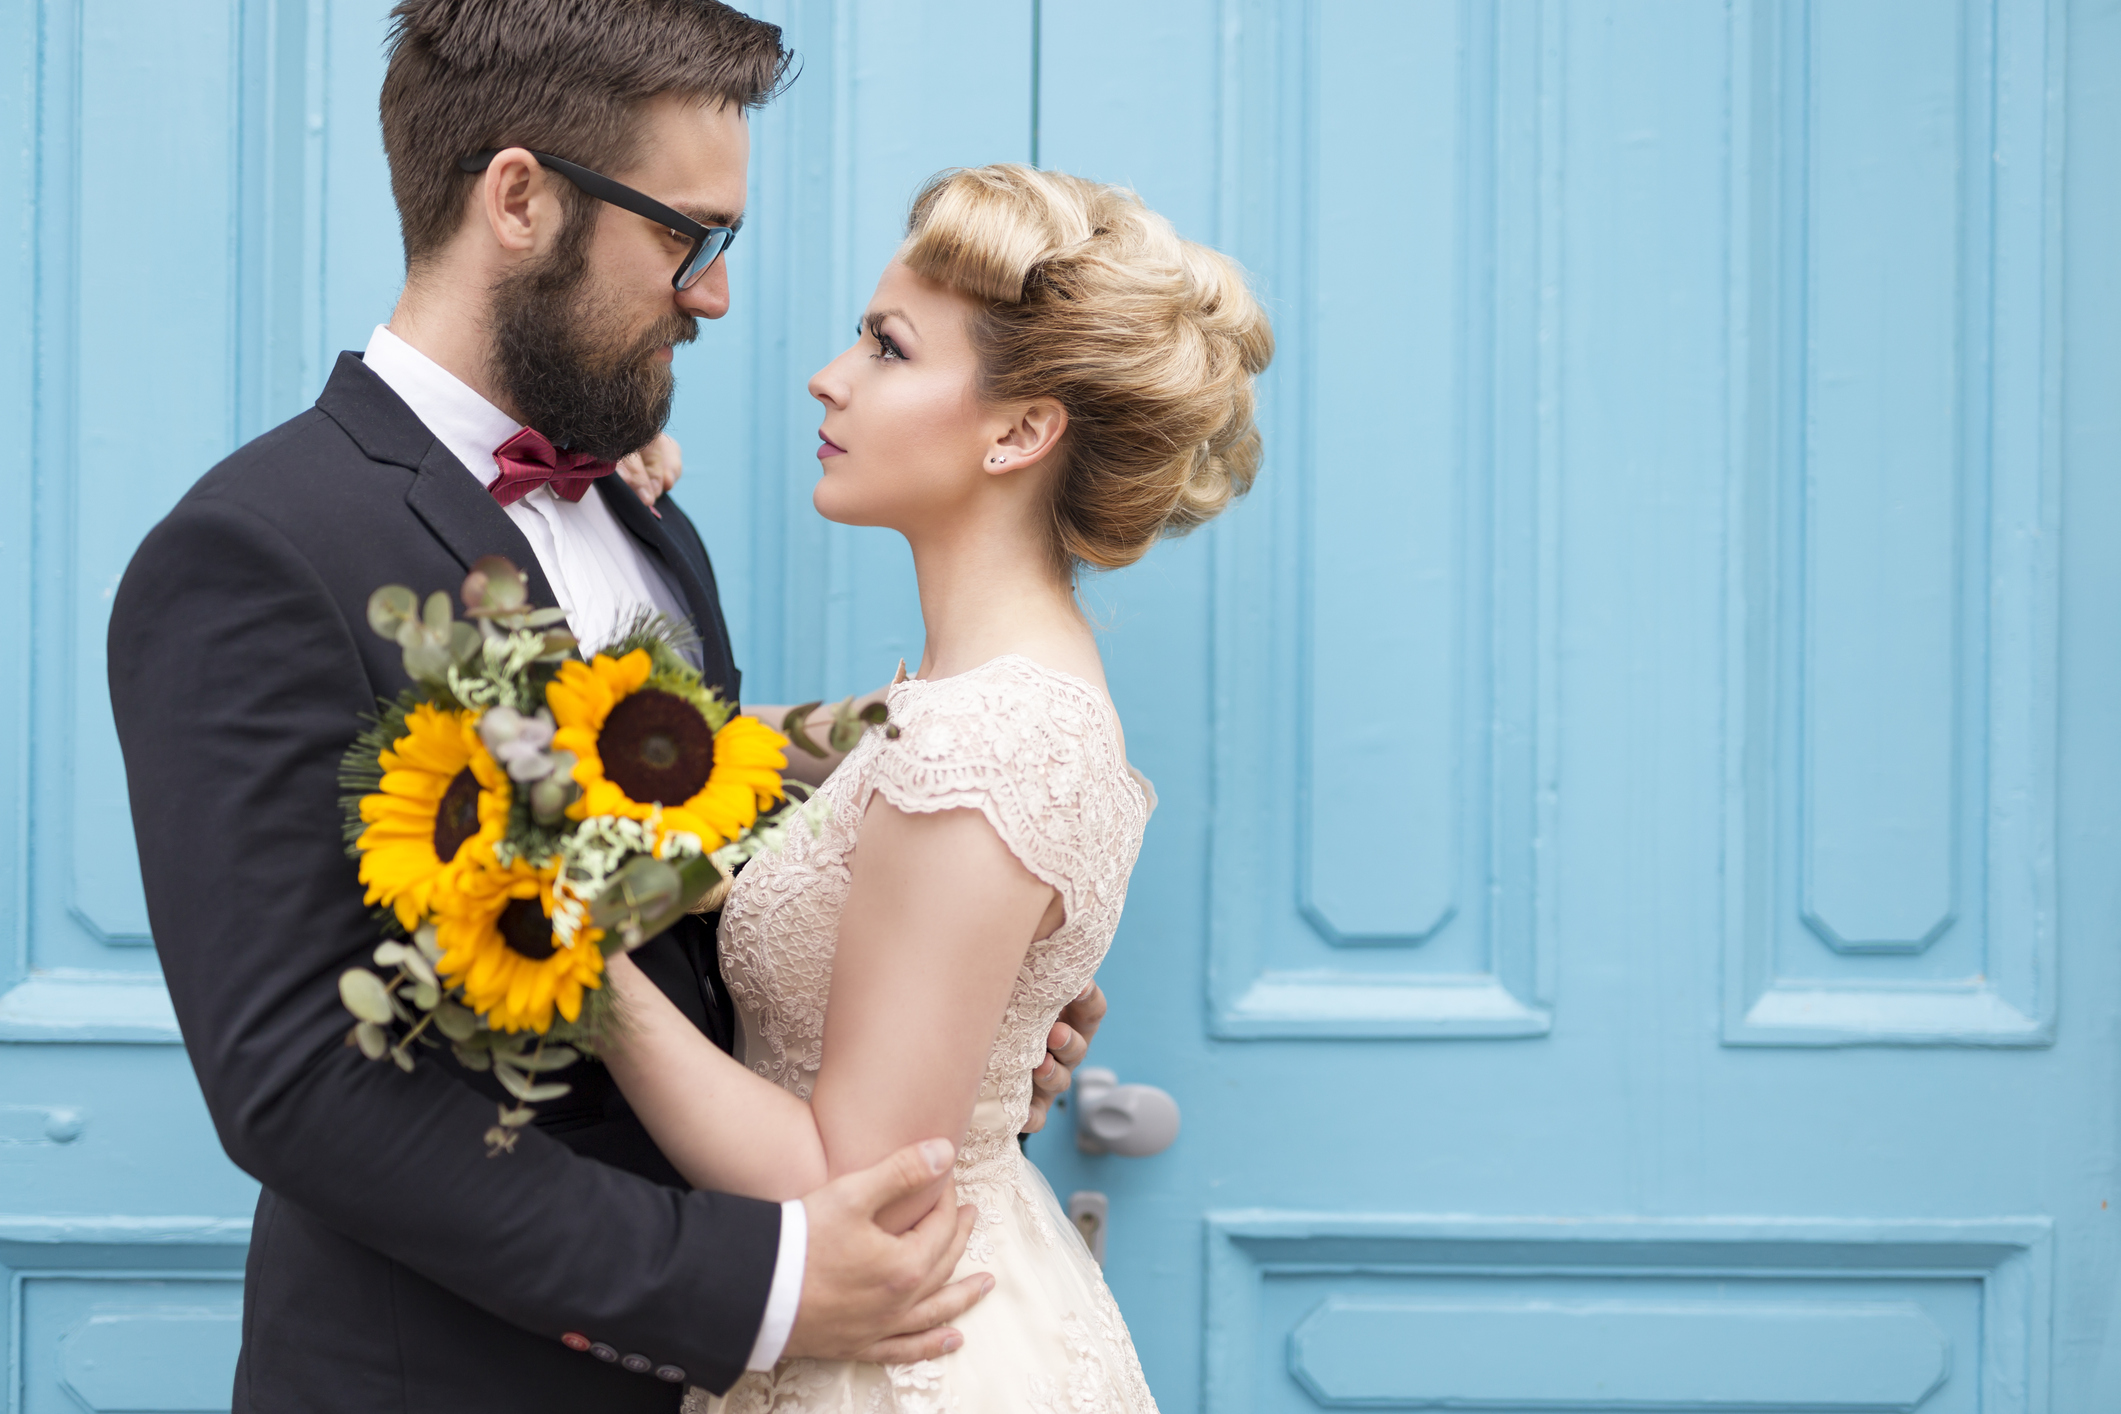 Newlywed couple standing next to a blue retro wooden door, holding a sunflower wedding bouquet and looking at each other